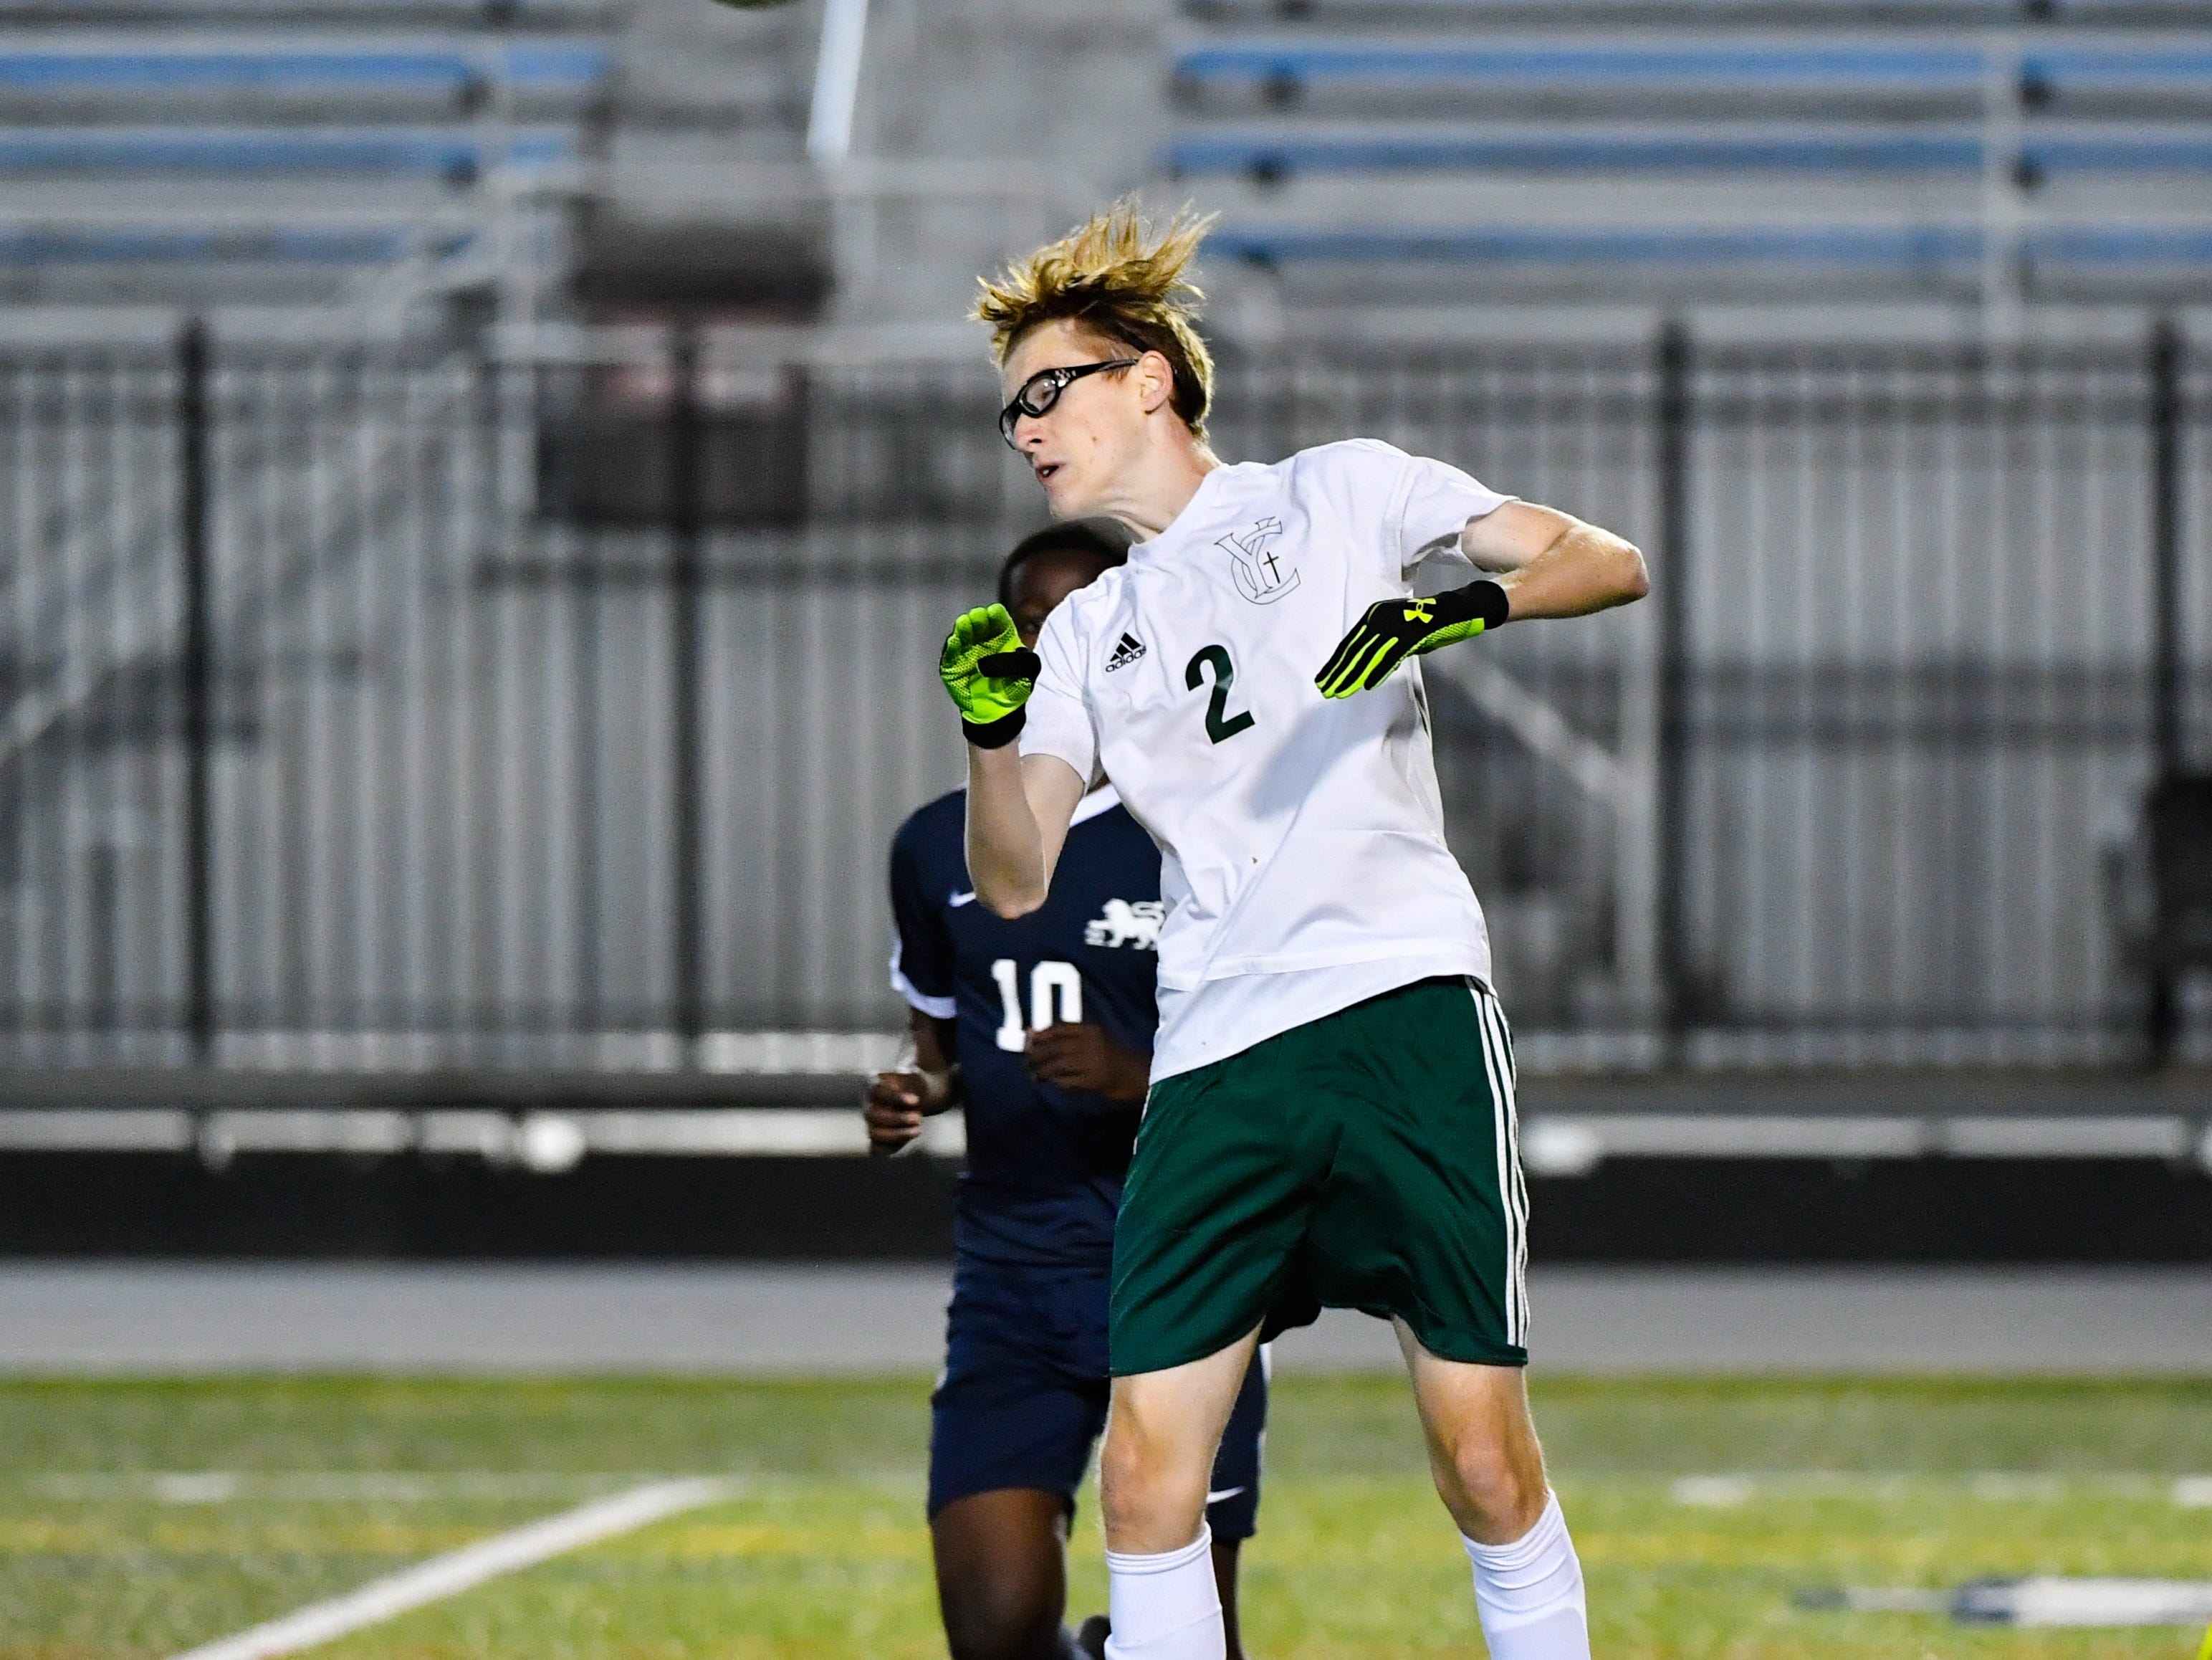 Phillip Jahn (2) deflects the ball during the District 3 Class 1A boys' soccer finals between York Catholic and Camp Hill at Hersheypark Stadium, October 31, 2018. The Lions beat the Fighting Irish 2-0.